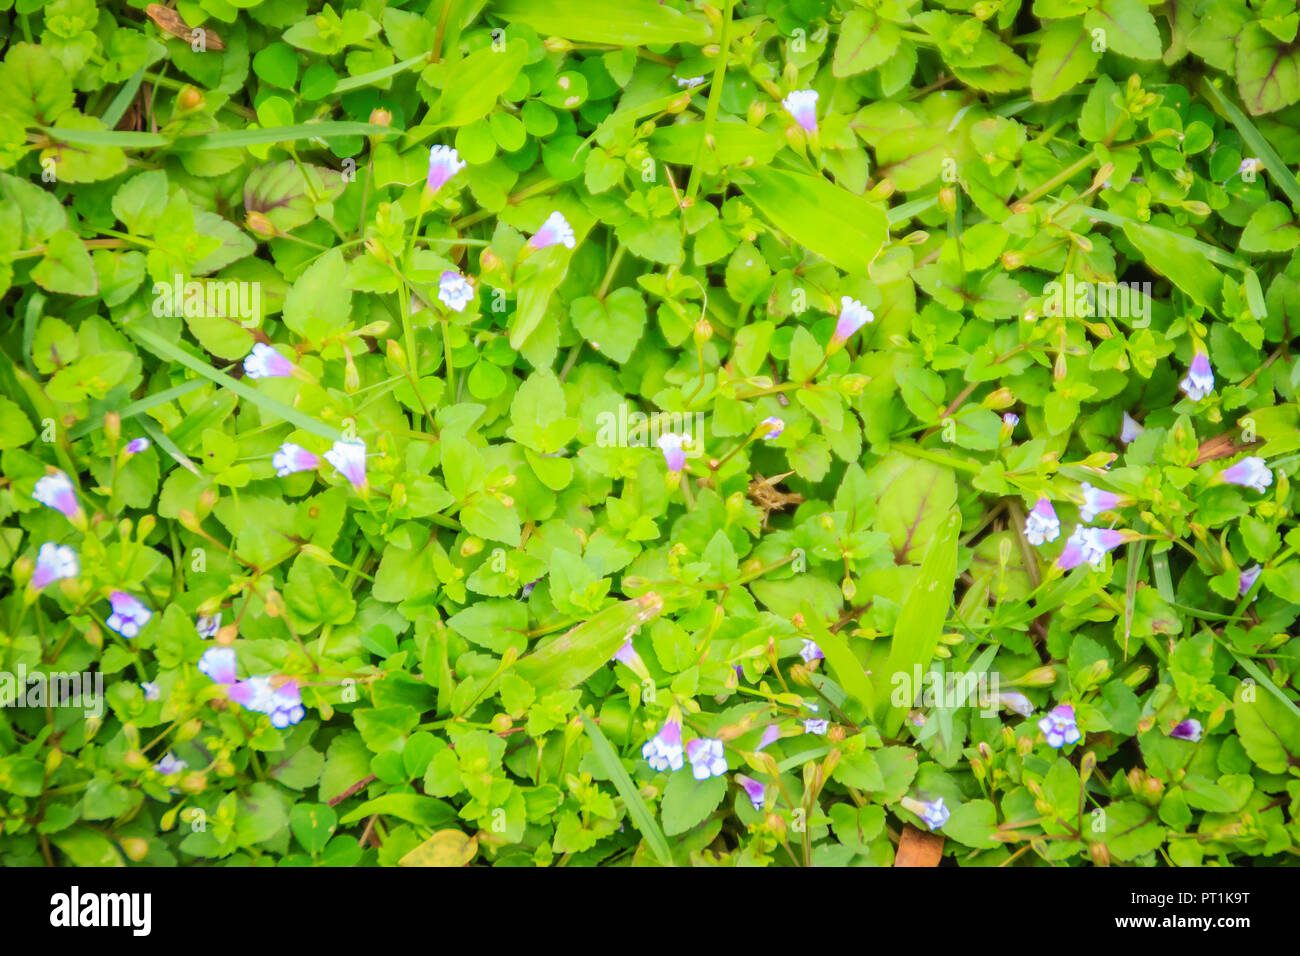 Beautiful Top View Of Green Grass With Small White Purple Flowers